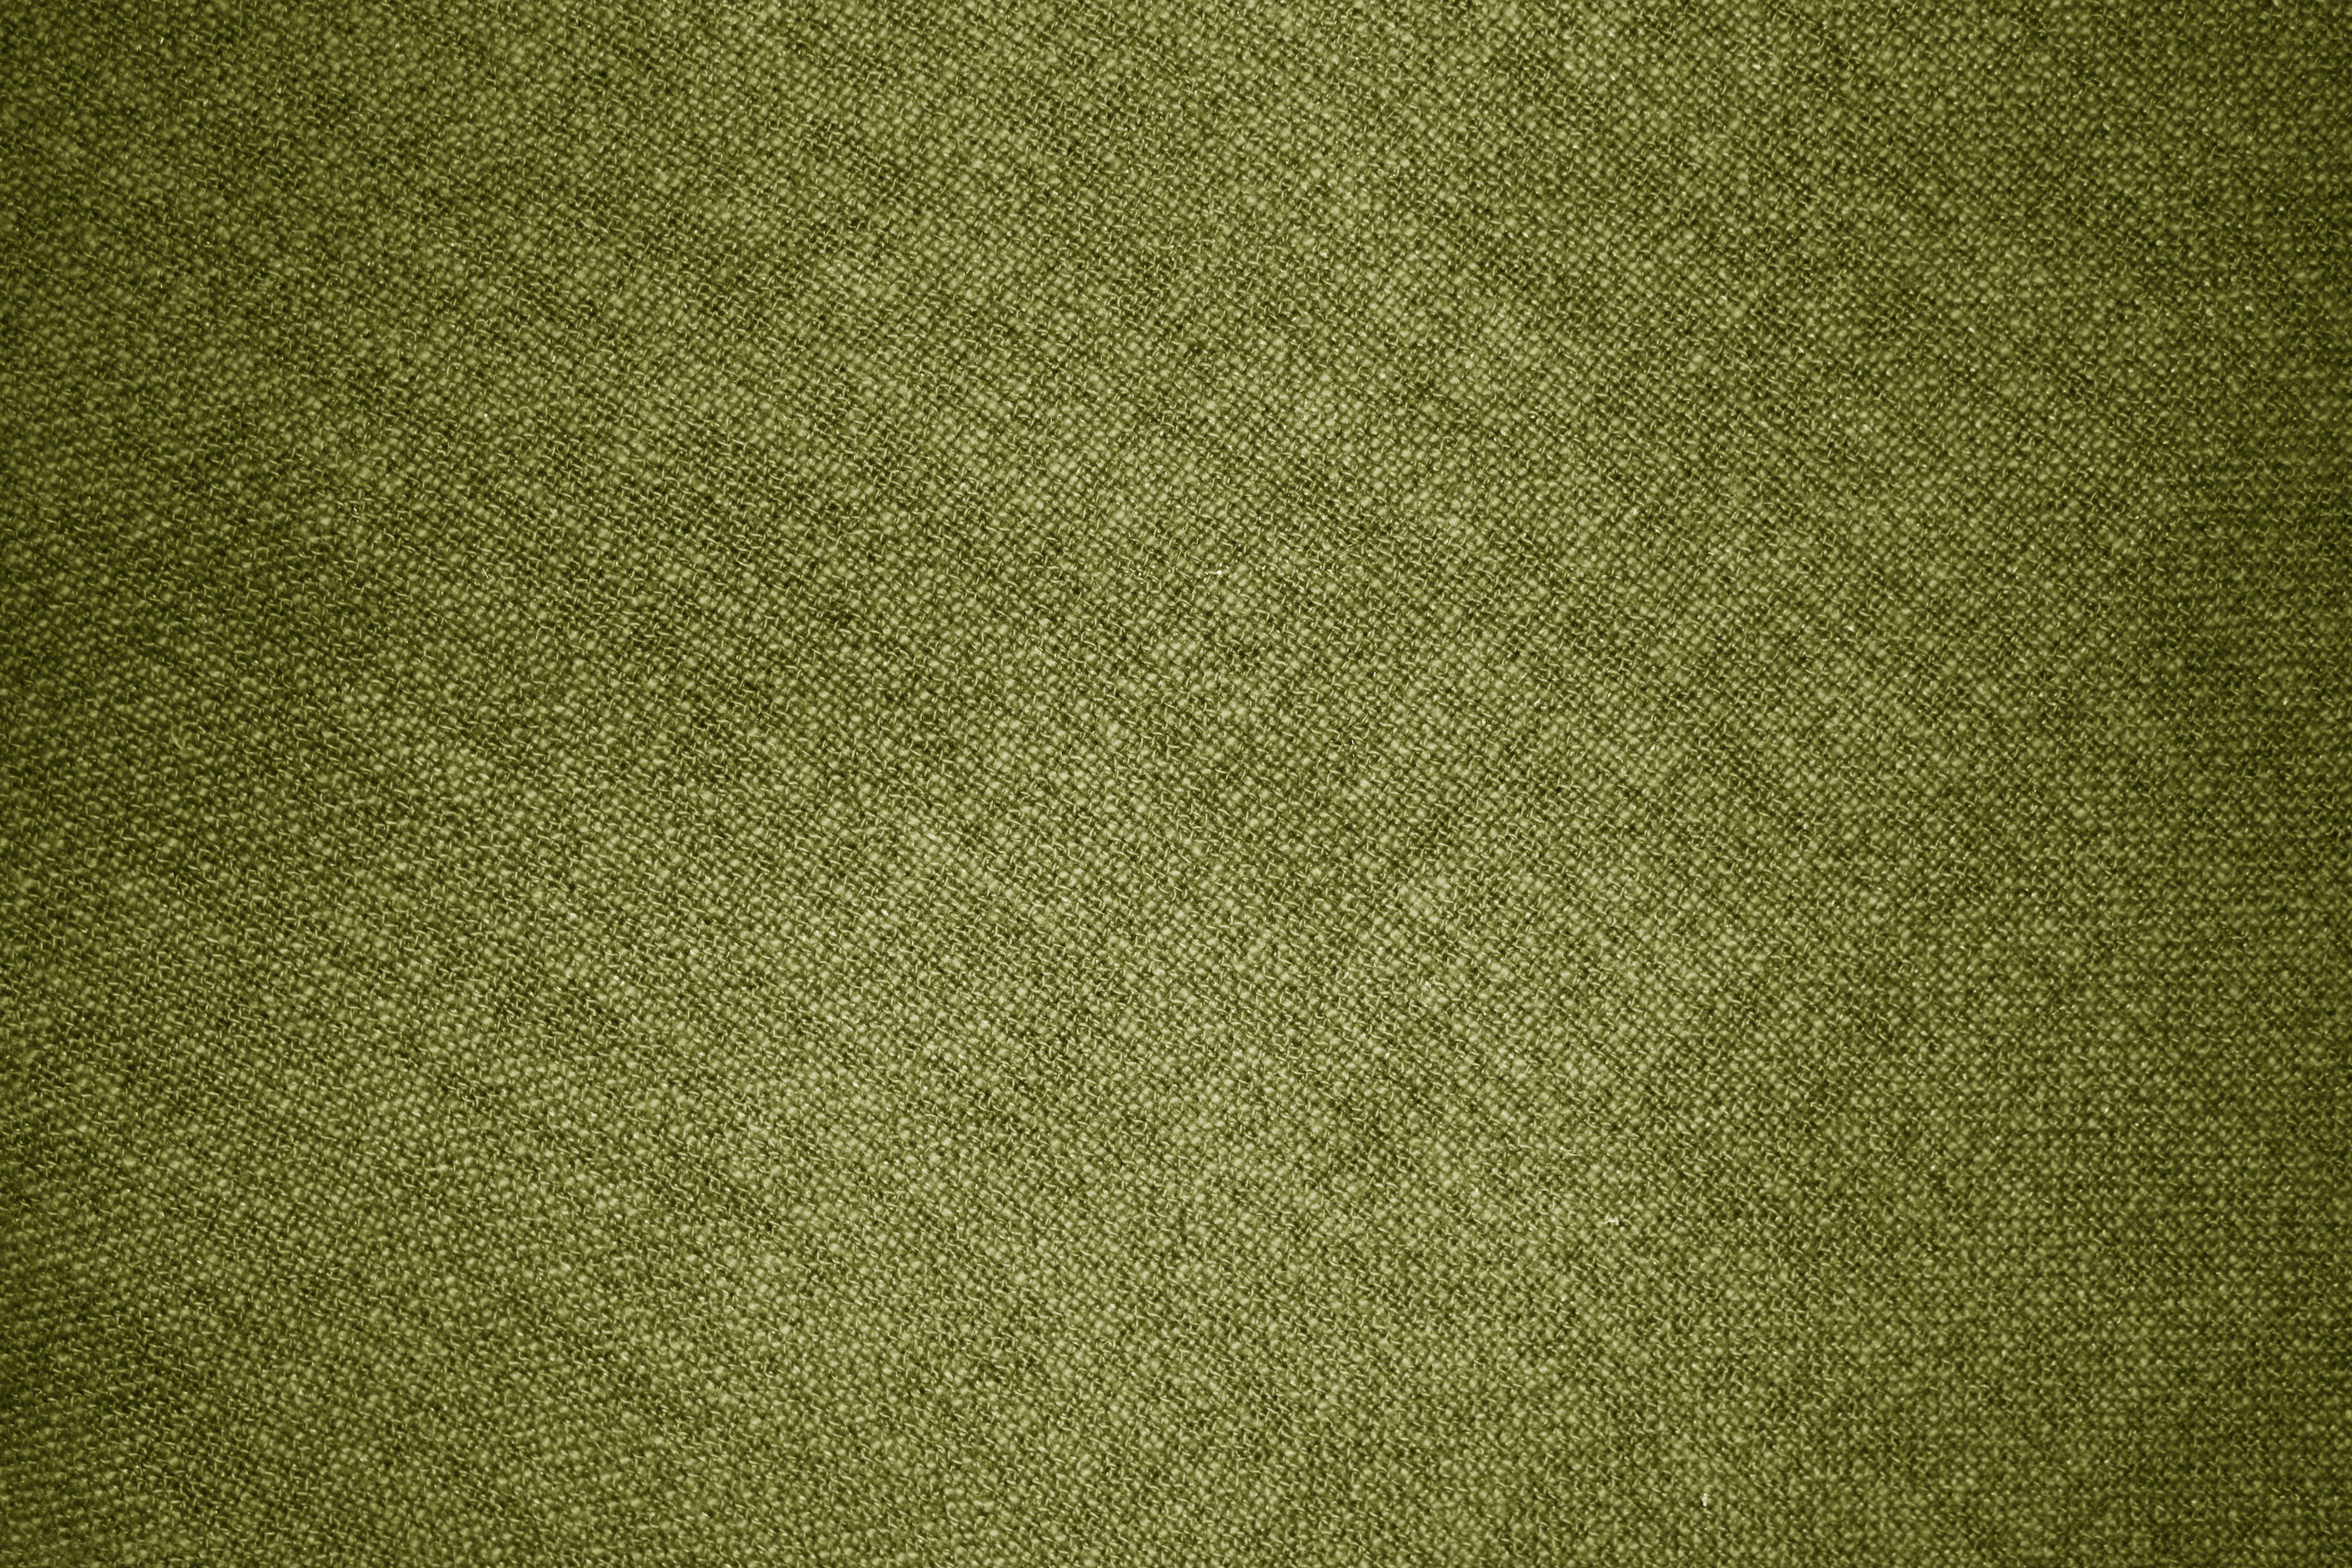 3888x2592 Olive Green Wallpapers Wallpapers HD Base Desktop Background ...